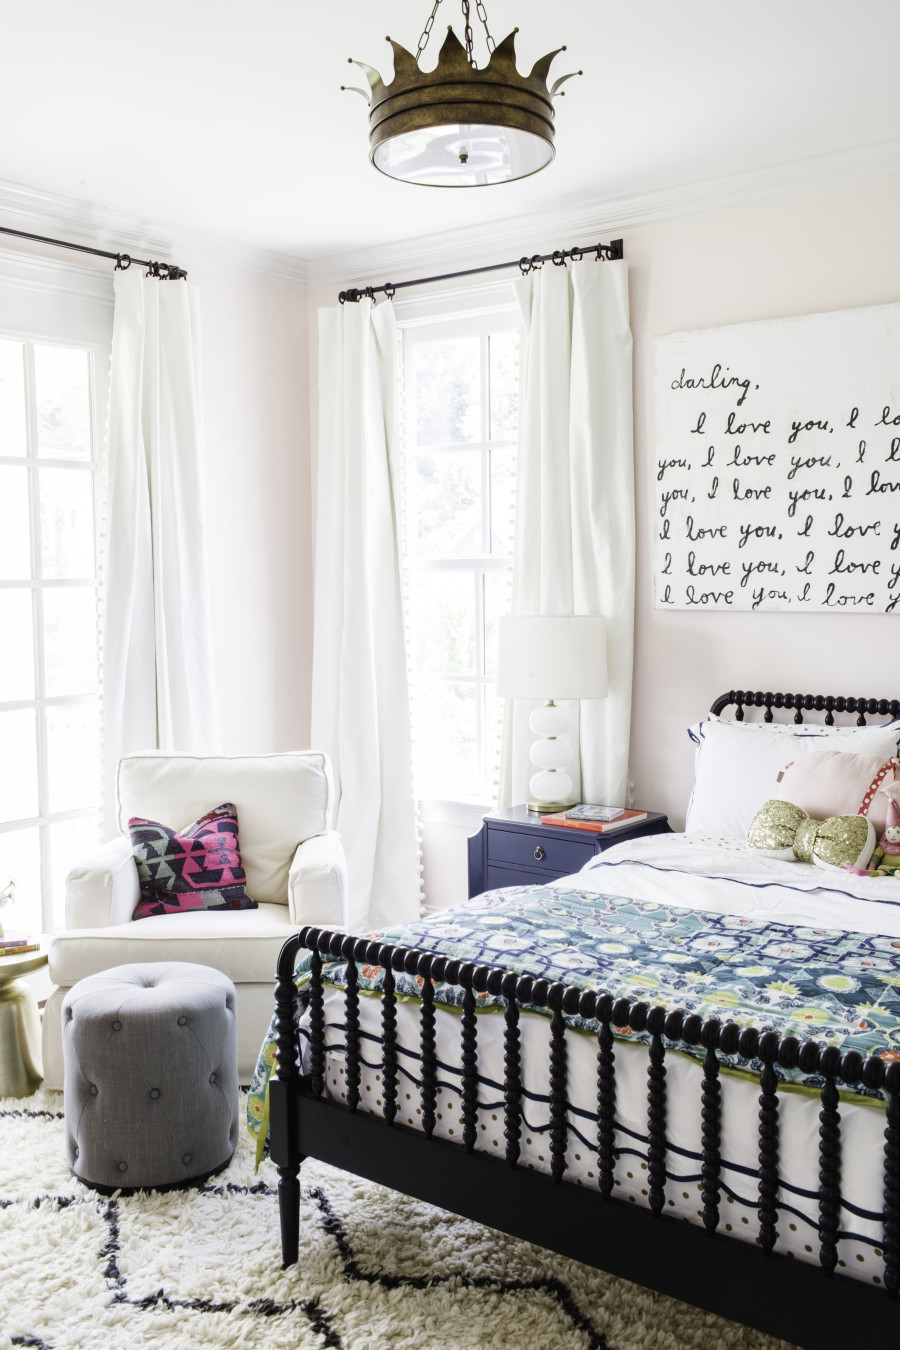 Child's bedroom with light pink walls, black bed and patterned rug